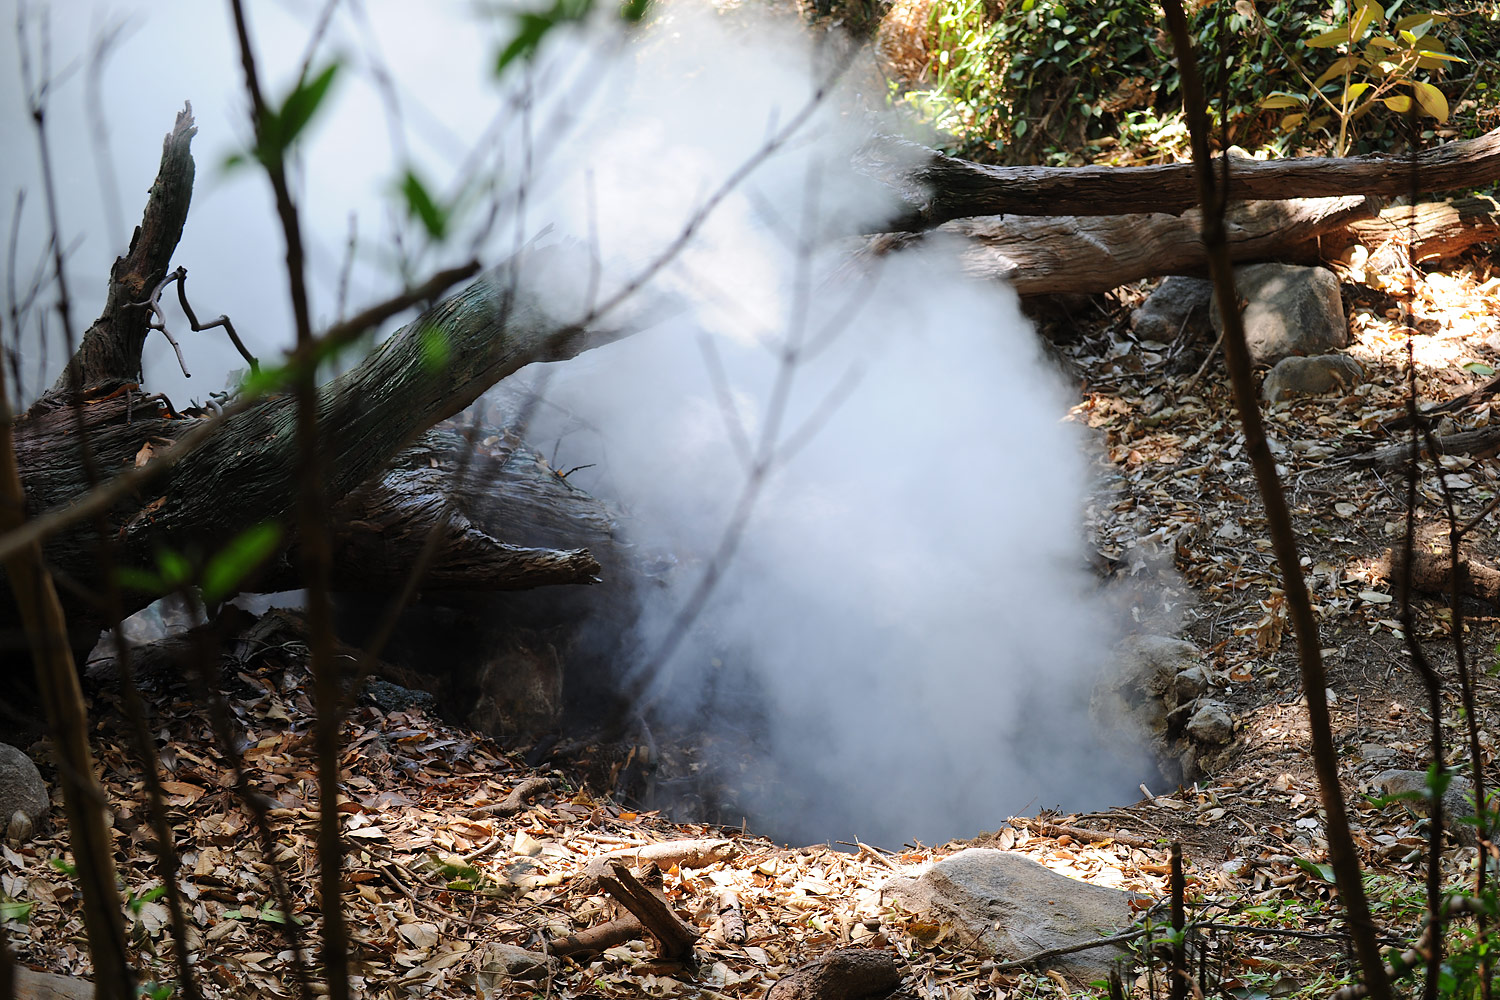 Smoke pours out of a hole in the ground, Rincón de la Vieja, Costa Rica